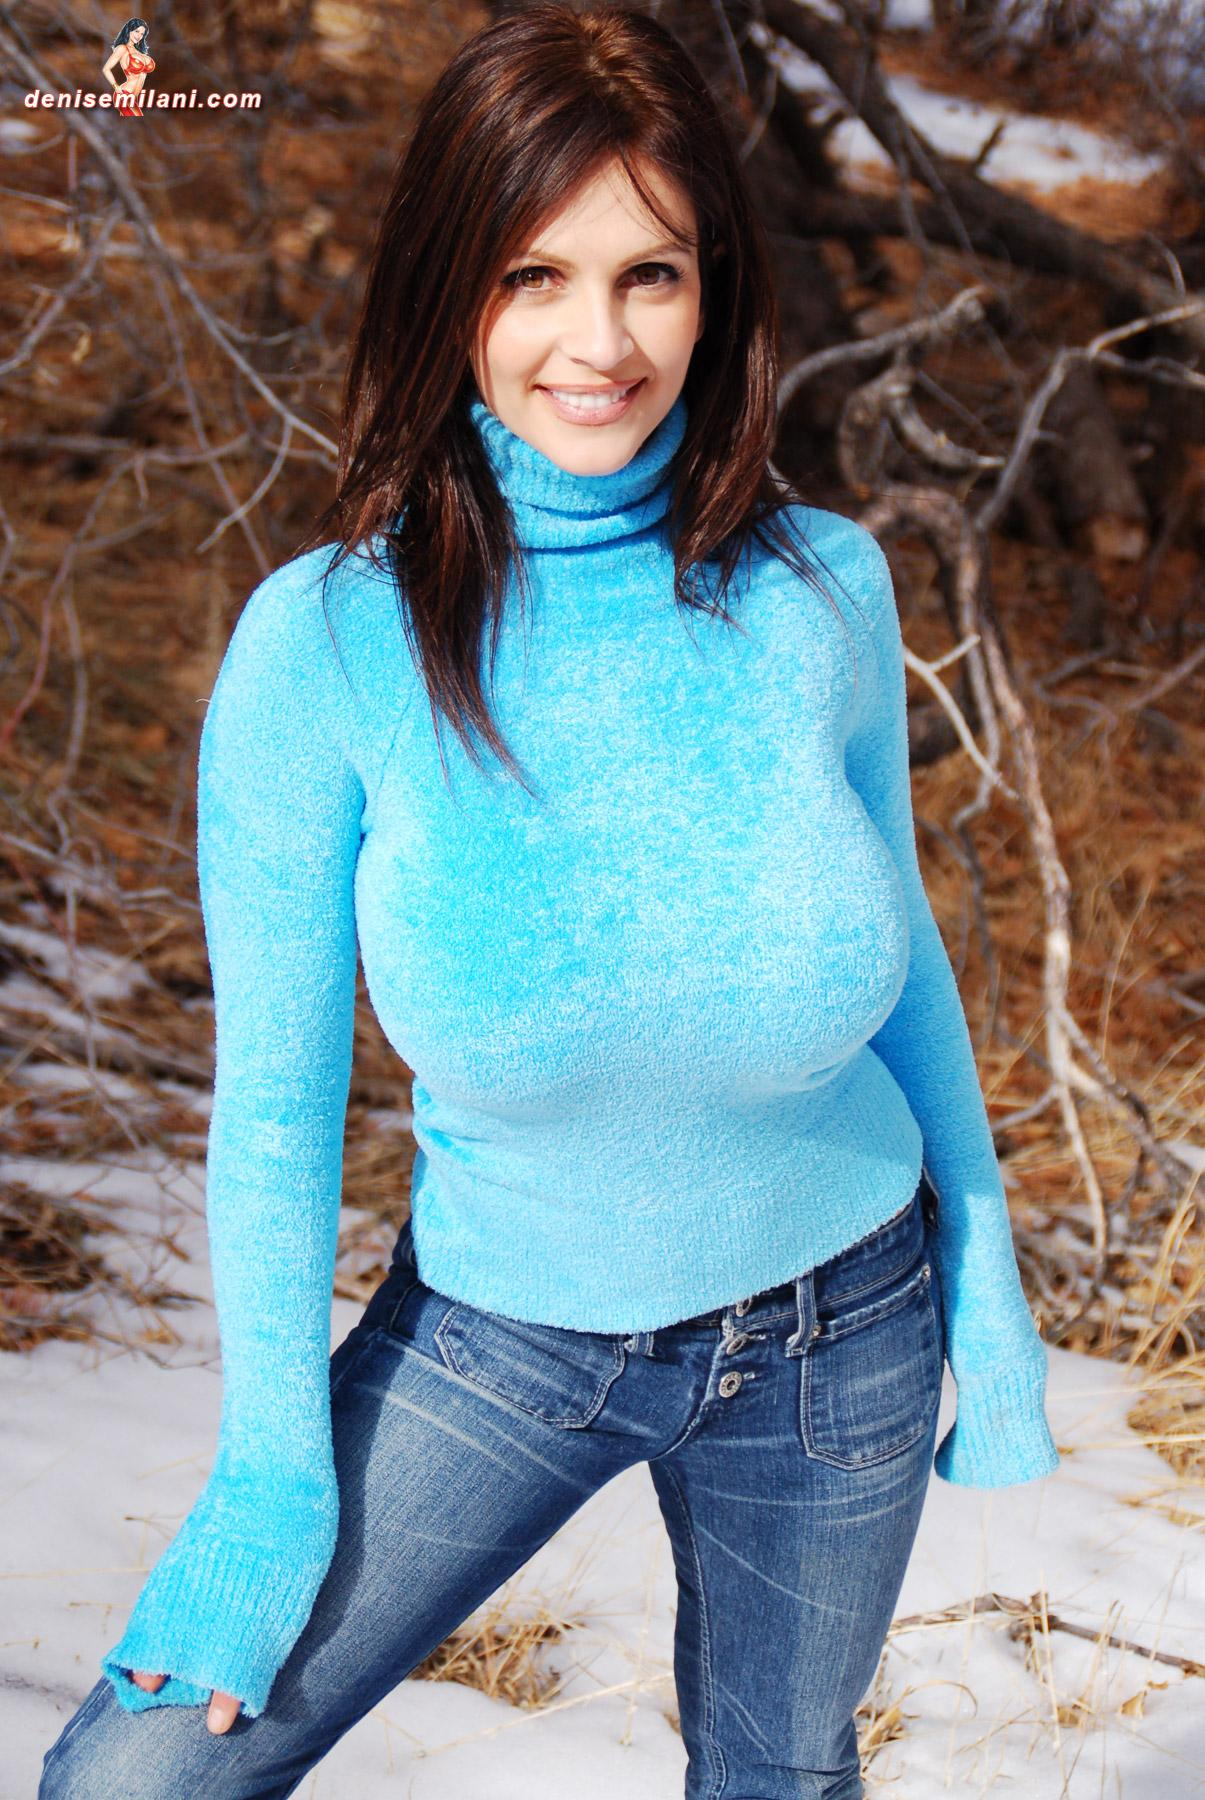 Google Image Result for http://4watching.com/tgp/denise-milani/big-bear/8.jpg